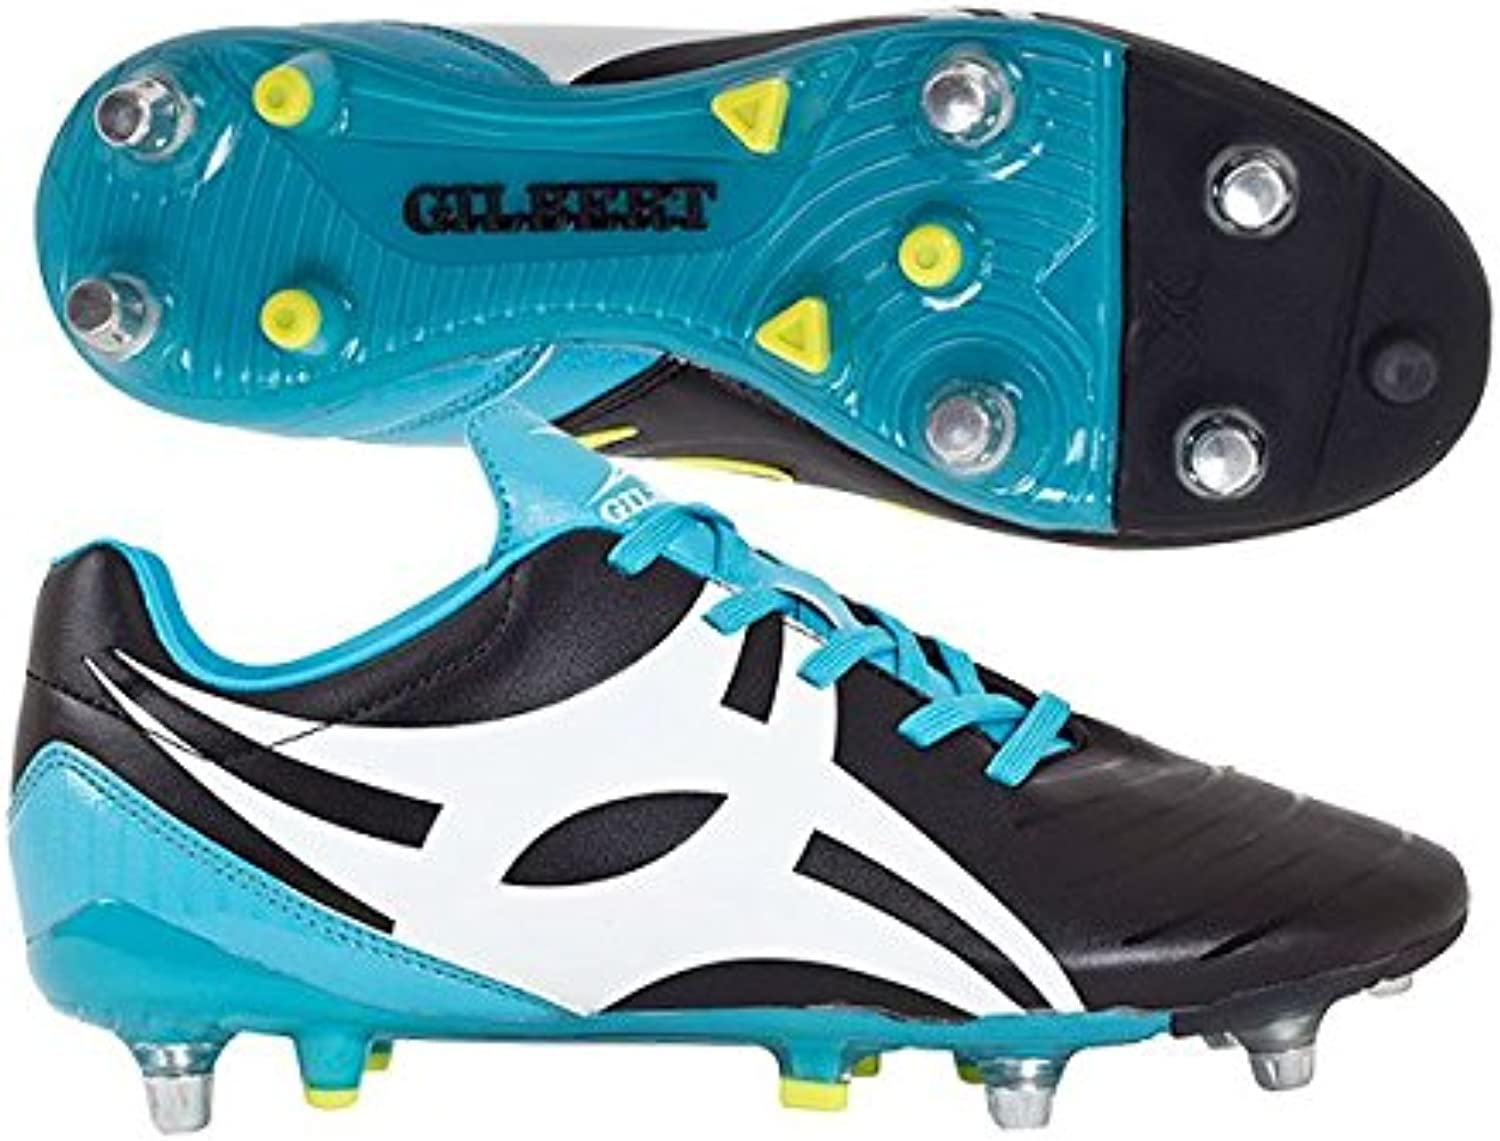 Gilbert Ignite Touch 6 Stud Hybrid SG Rugby Boots - Black bluee Yellow